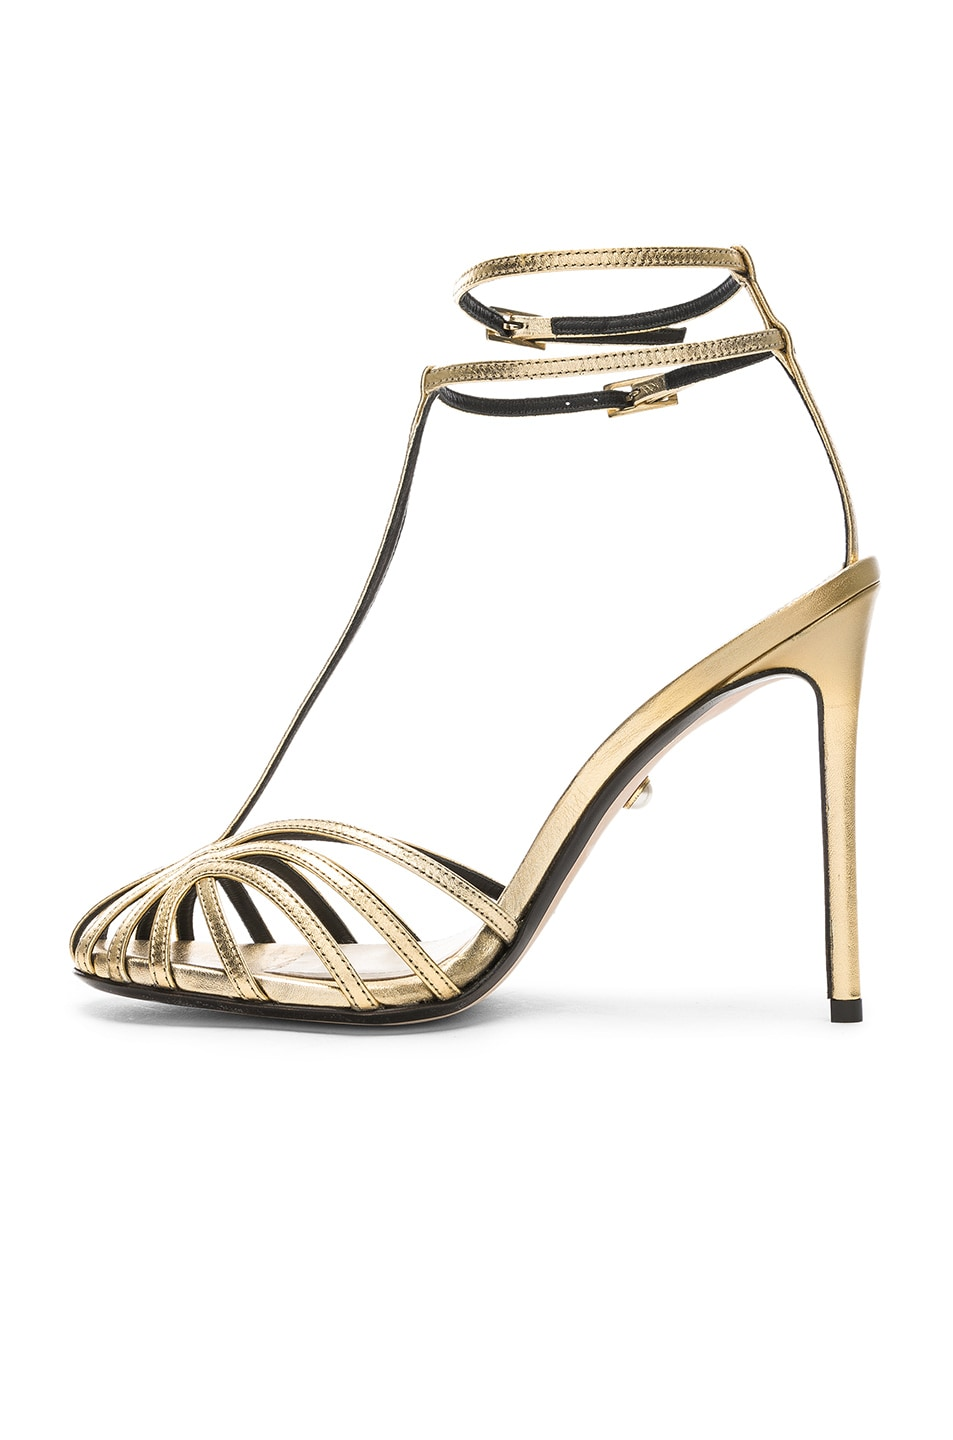 Image 5 of ALEVI Milano Alevi Stella Sandal in Shine Light Gold